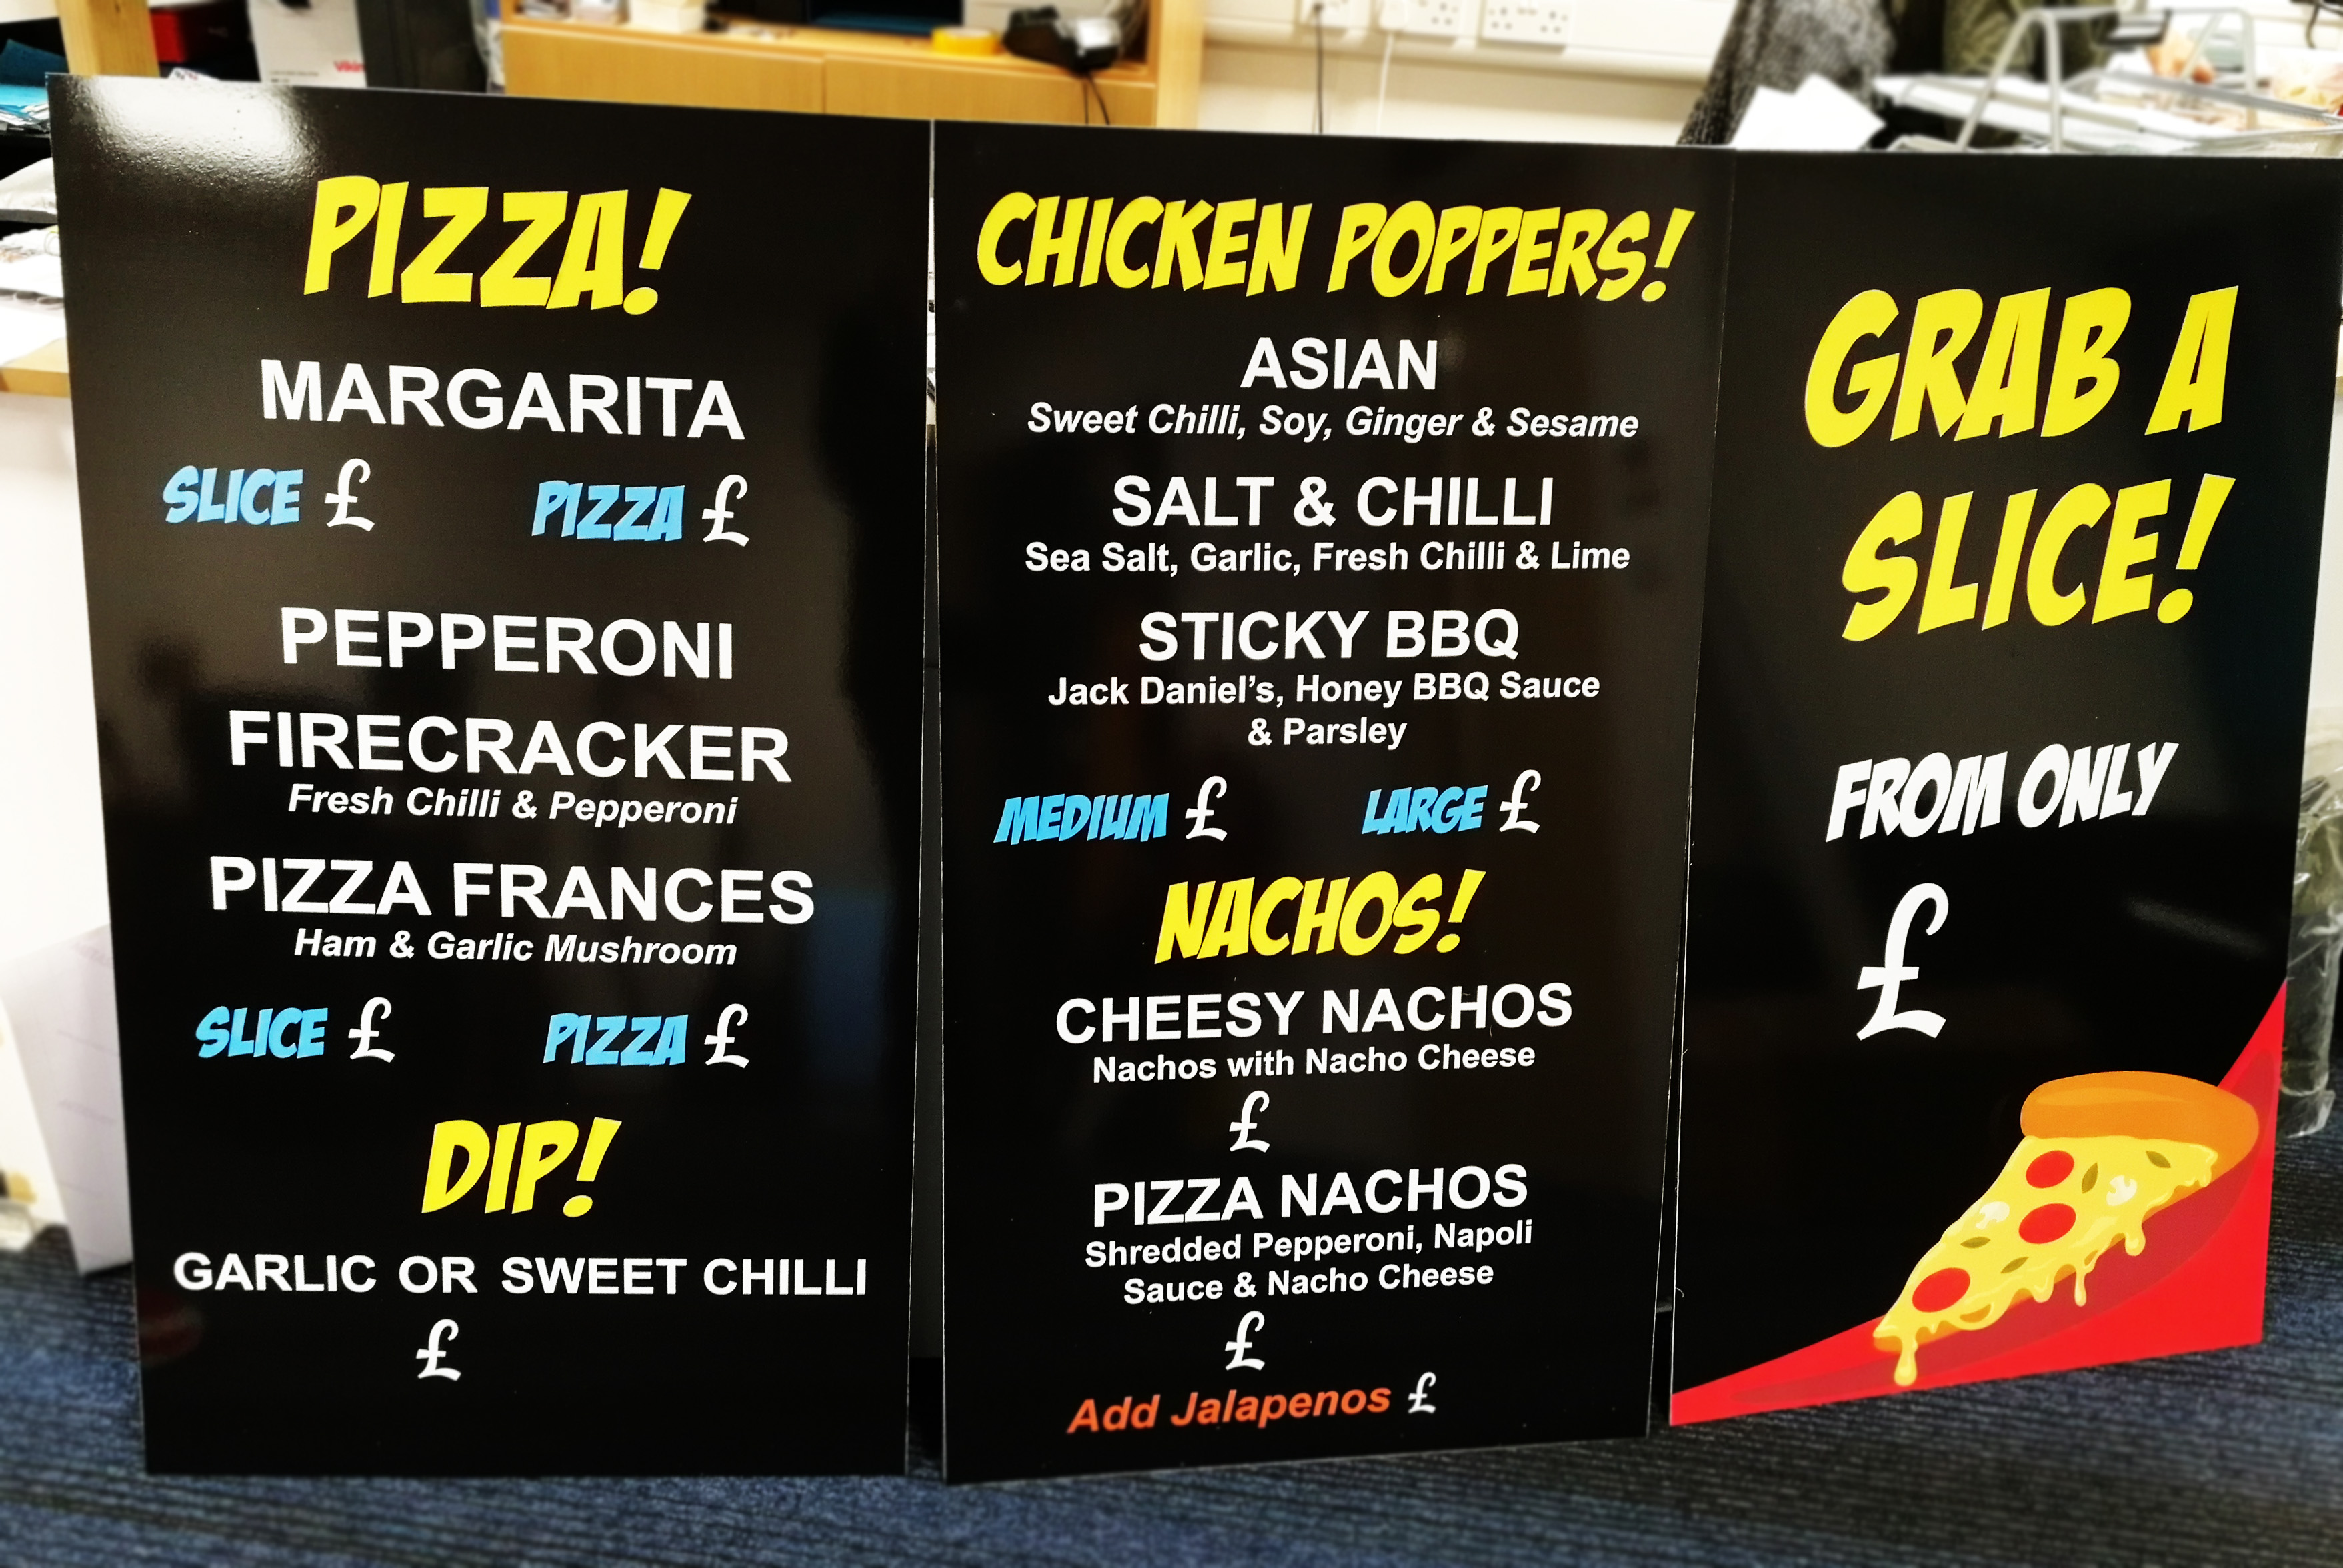 Pizza---Chicken-Poppers-Menu-Boards